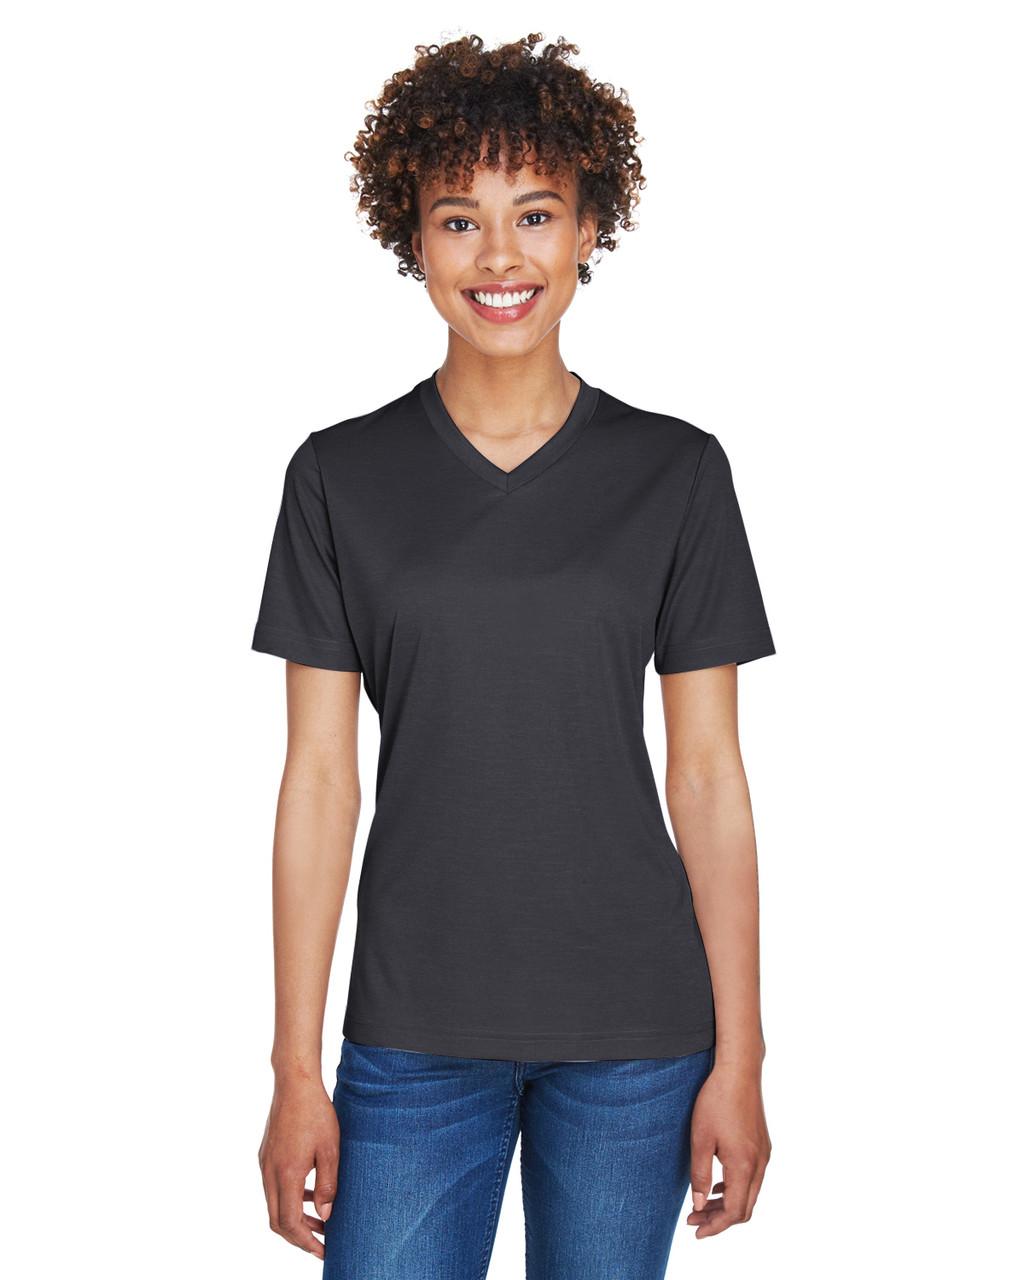 Black Heather - TT11HW Team 365 Ladies' Sonic Heather Performance T-Shirt | BlankClothing.ca